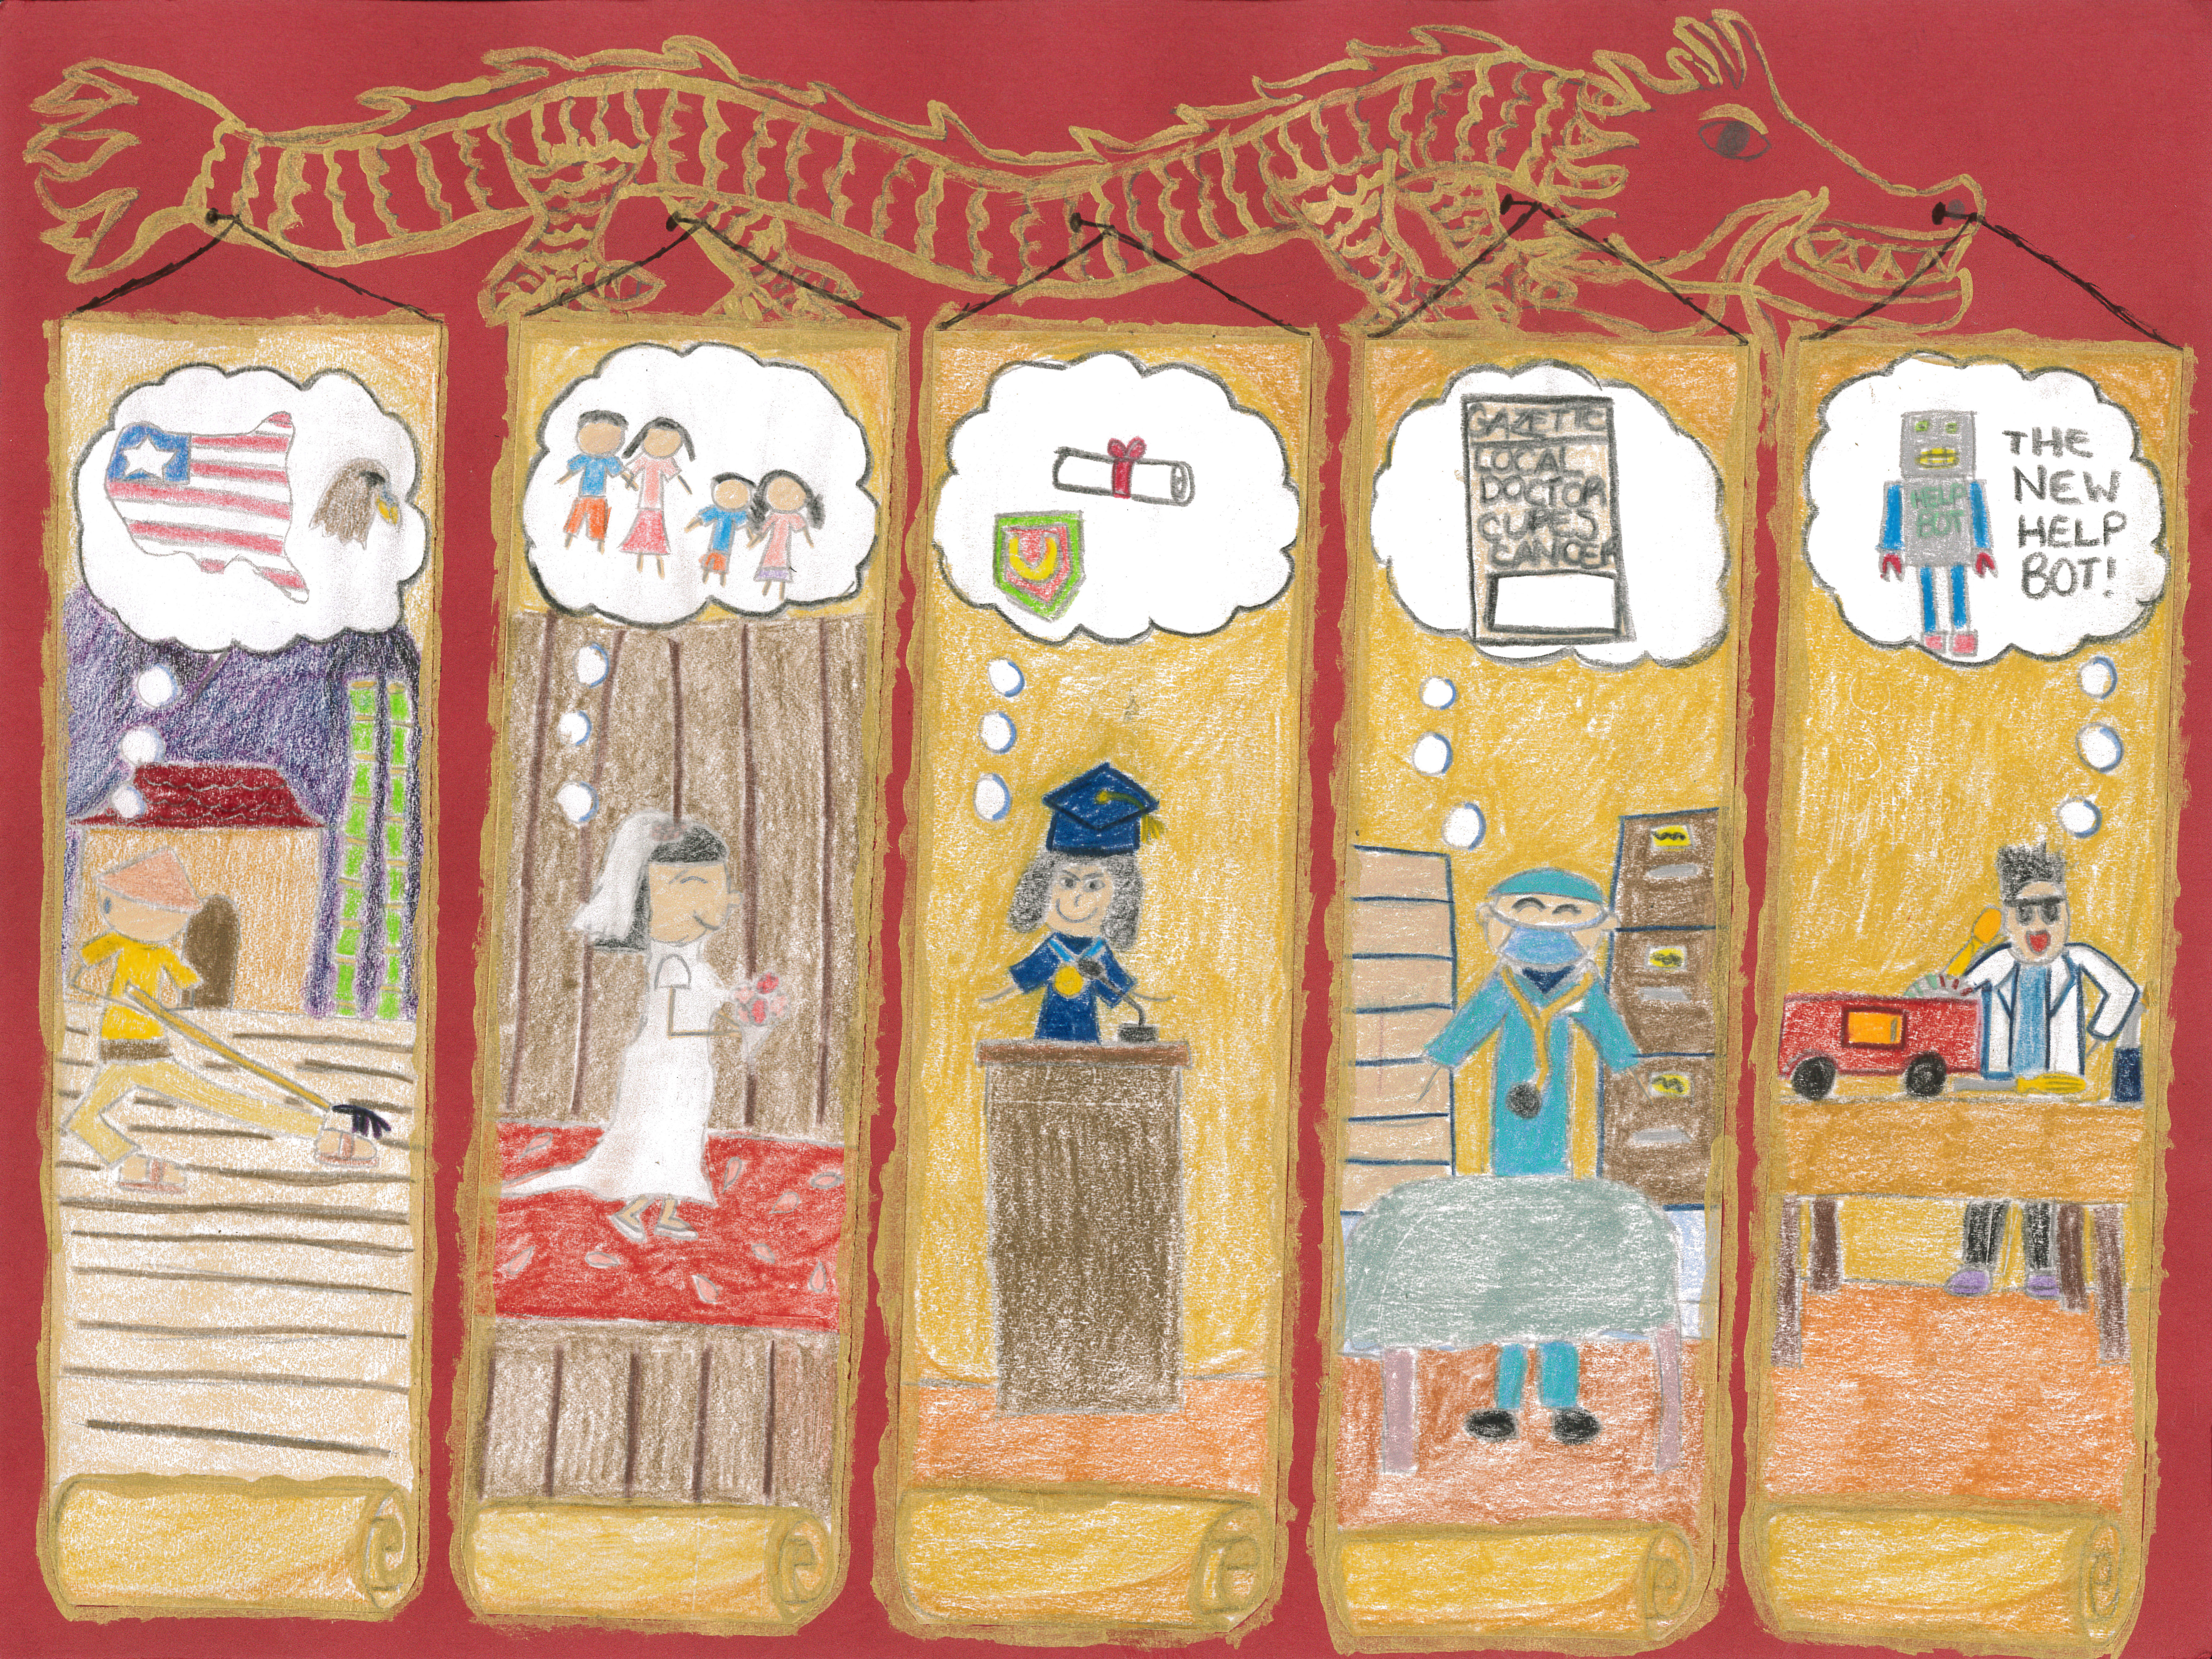 Alexis Kong / Generations and Their Dreams / Honorable Mention / Grade 5